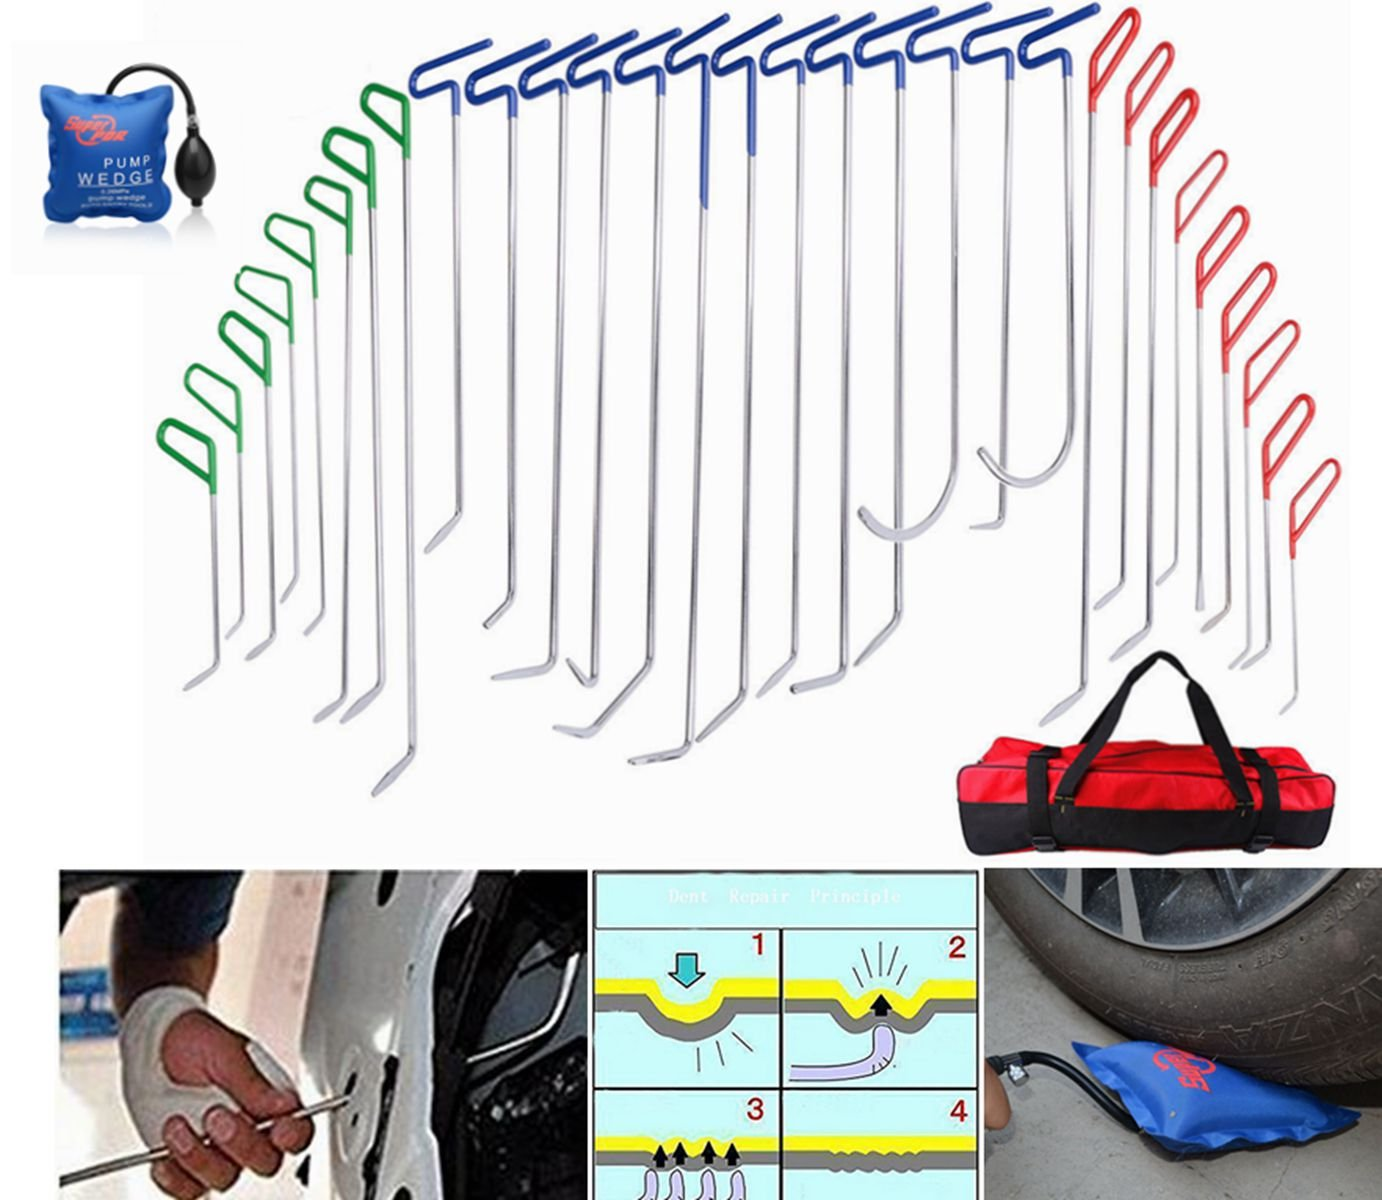 FLY5D 32Pcs PDR Tools Starter Car Dent Removal Tool Sets Car Paintless Dent Removal Repair Tool Kits